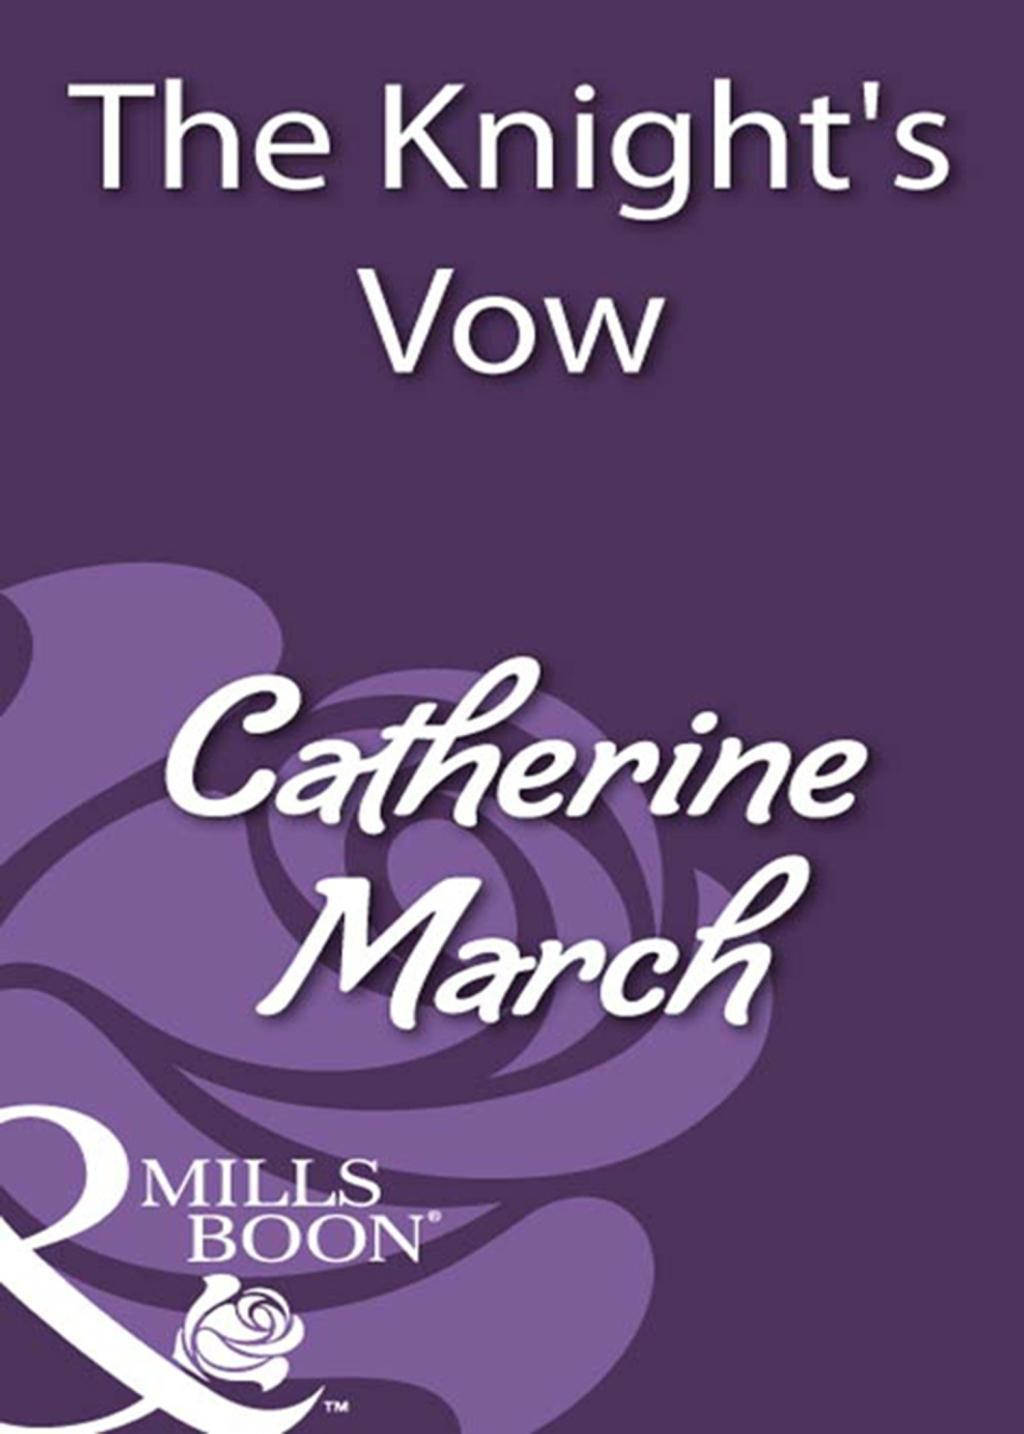 The Knight's Vow (Mills & Boon Historical)